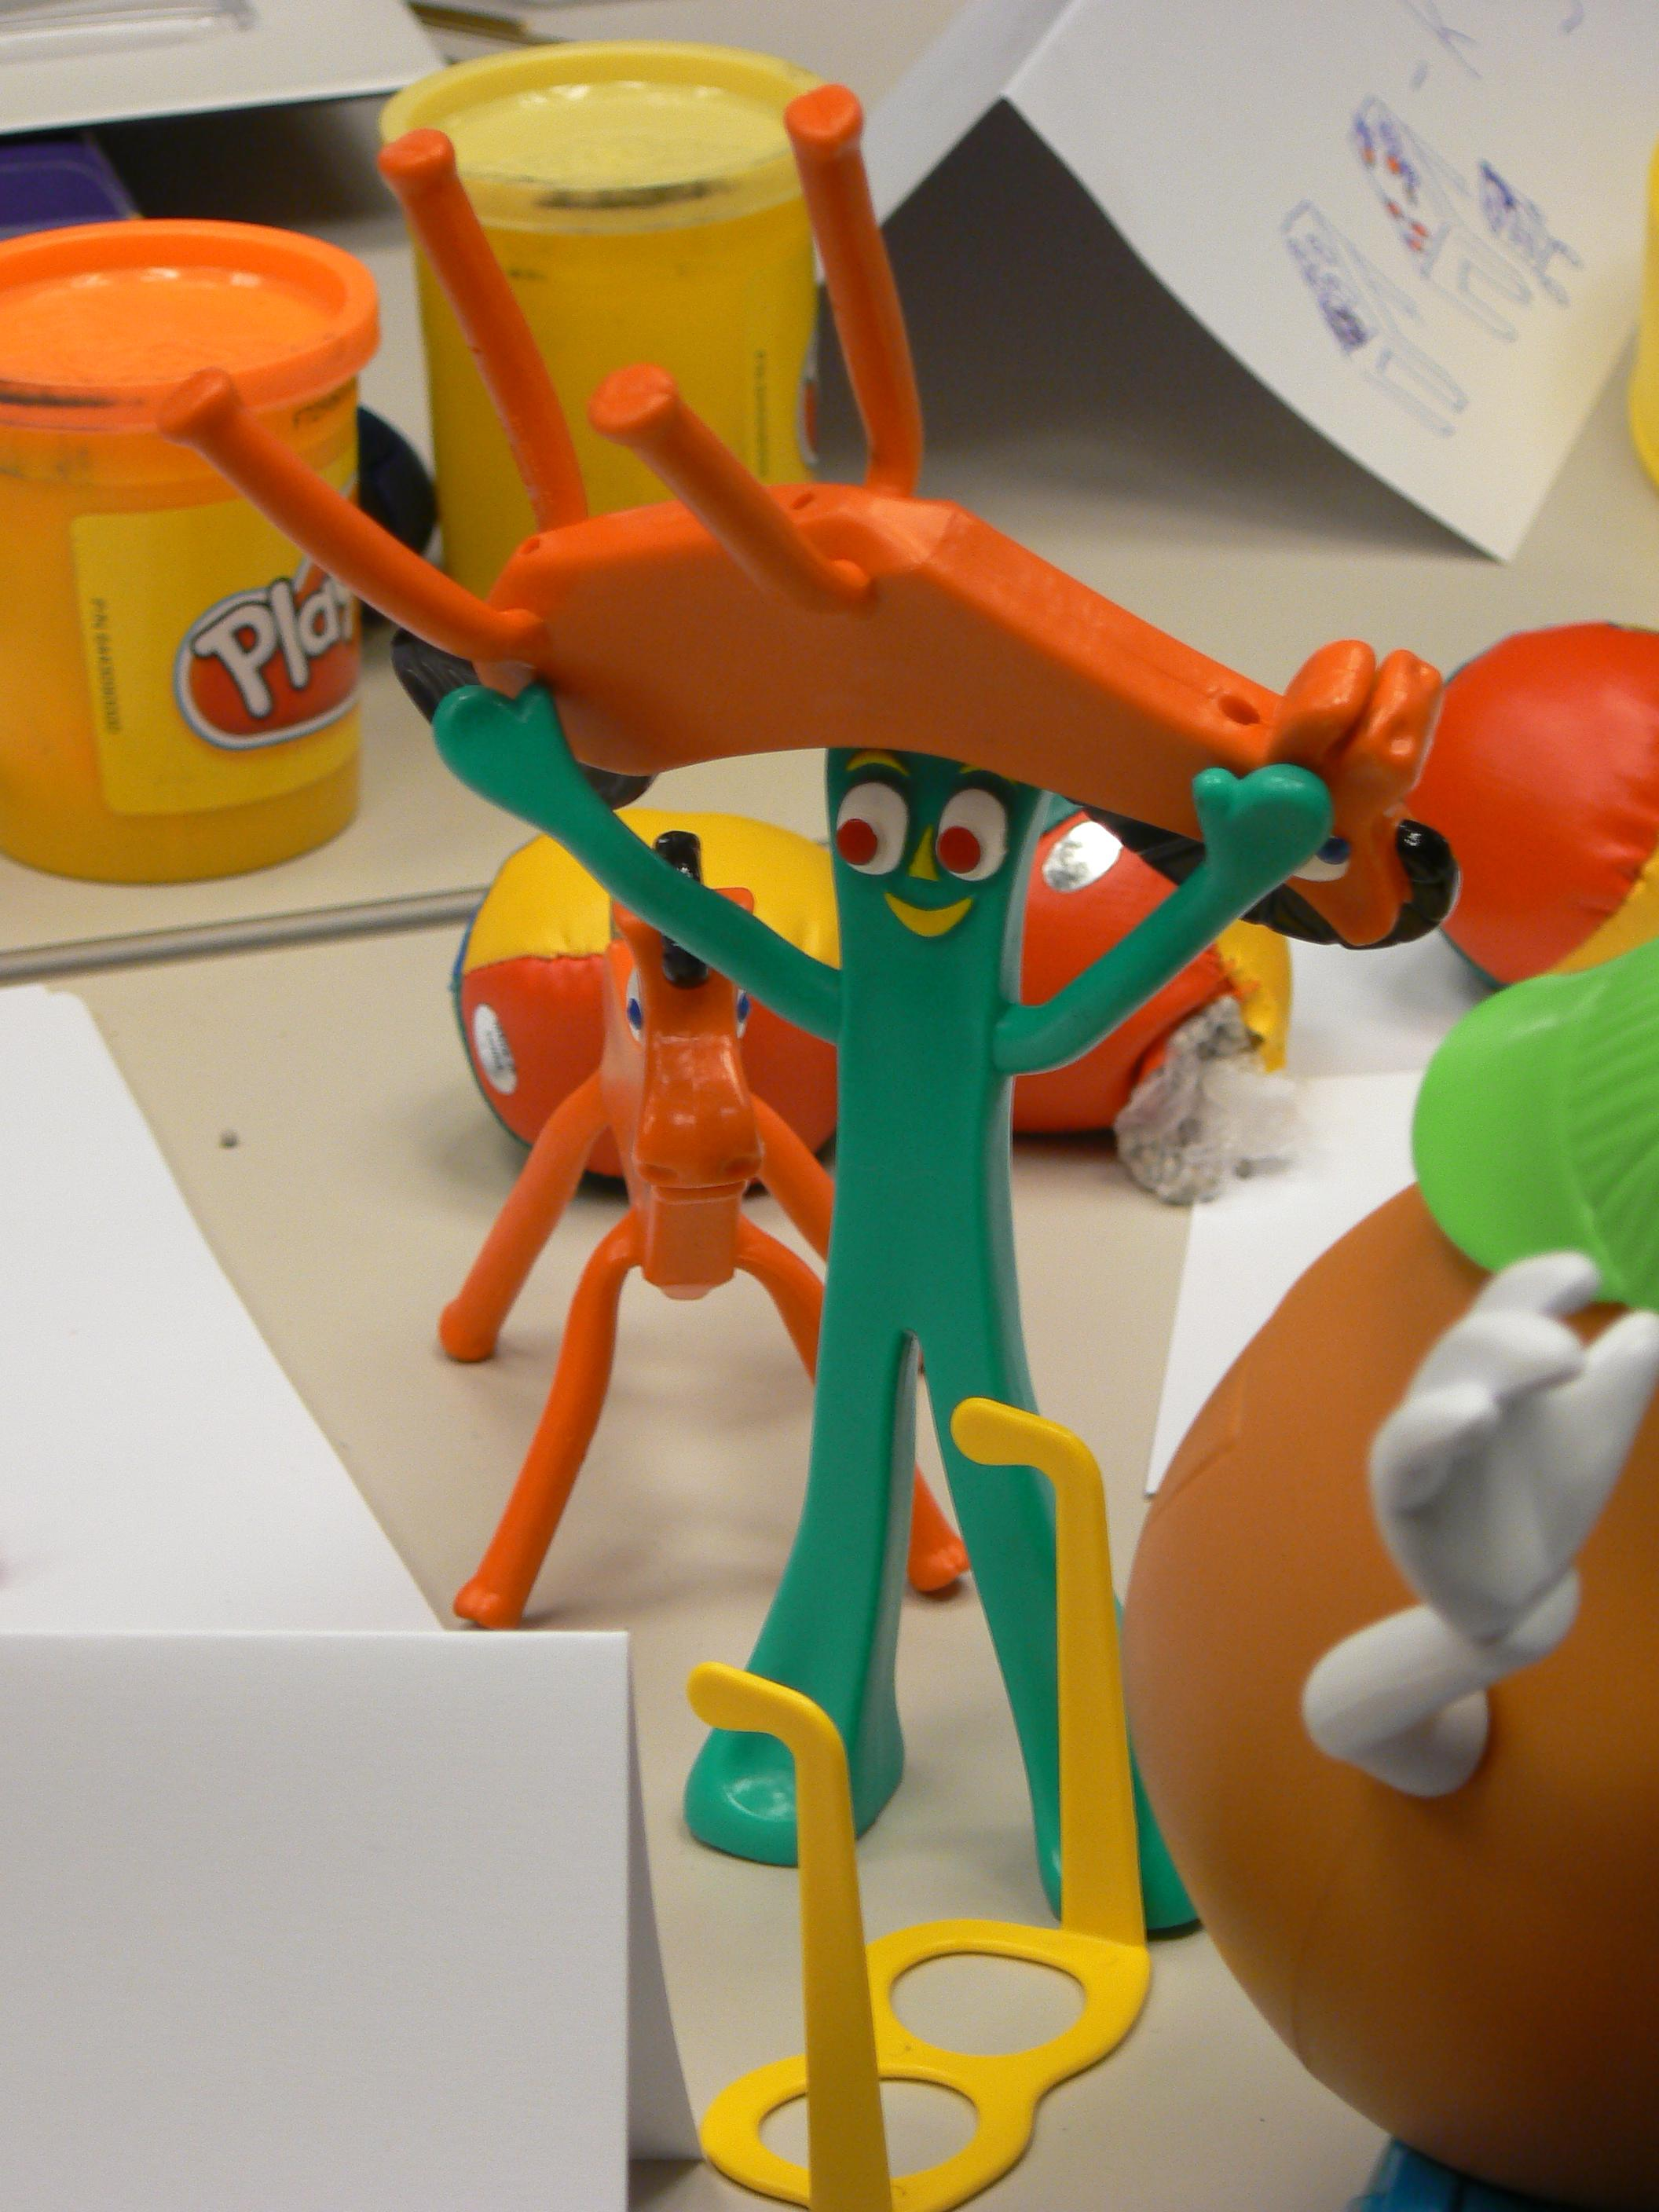 gumby-shows-his-strength